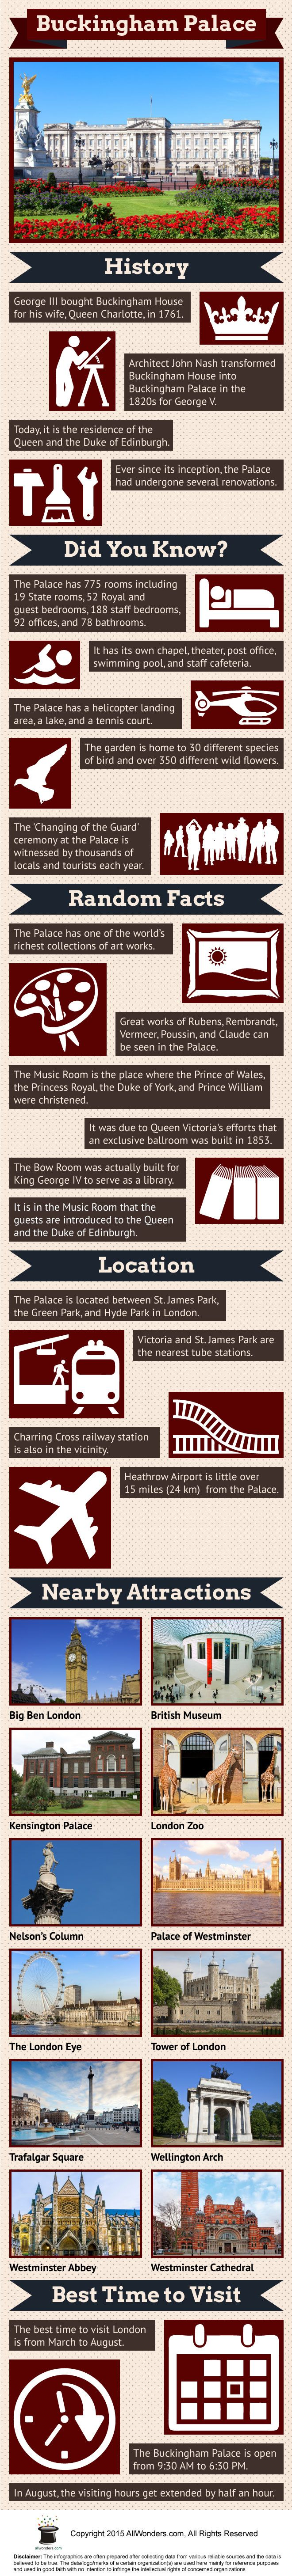 Buckingham Palace Infographic                                                                                                                                                                                 More                                                                                                                                                                                 More